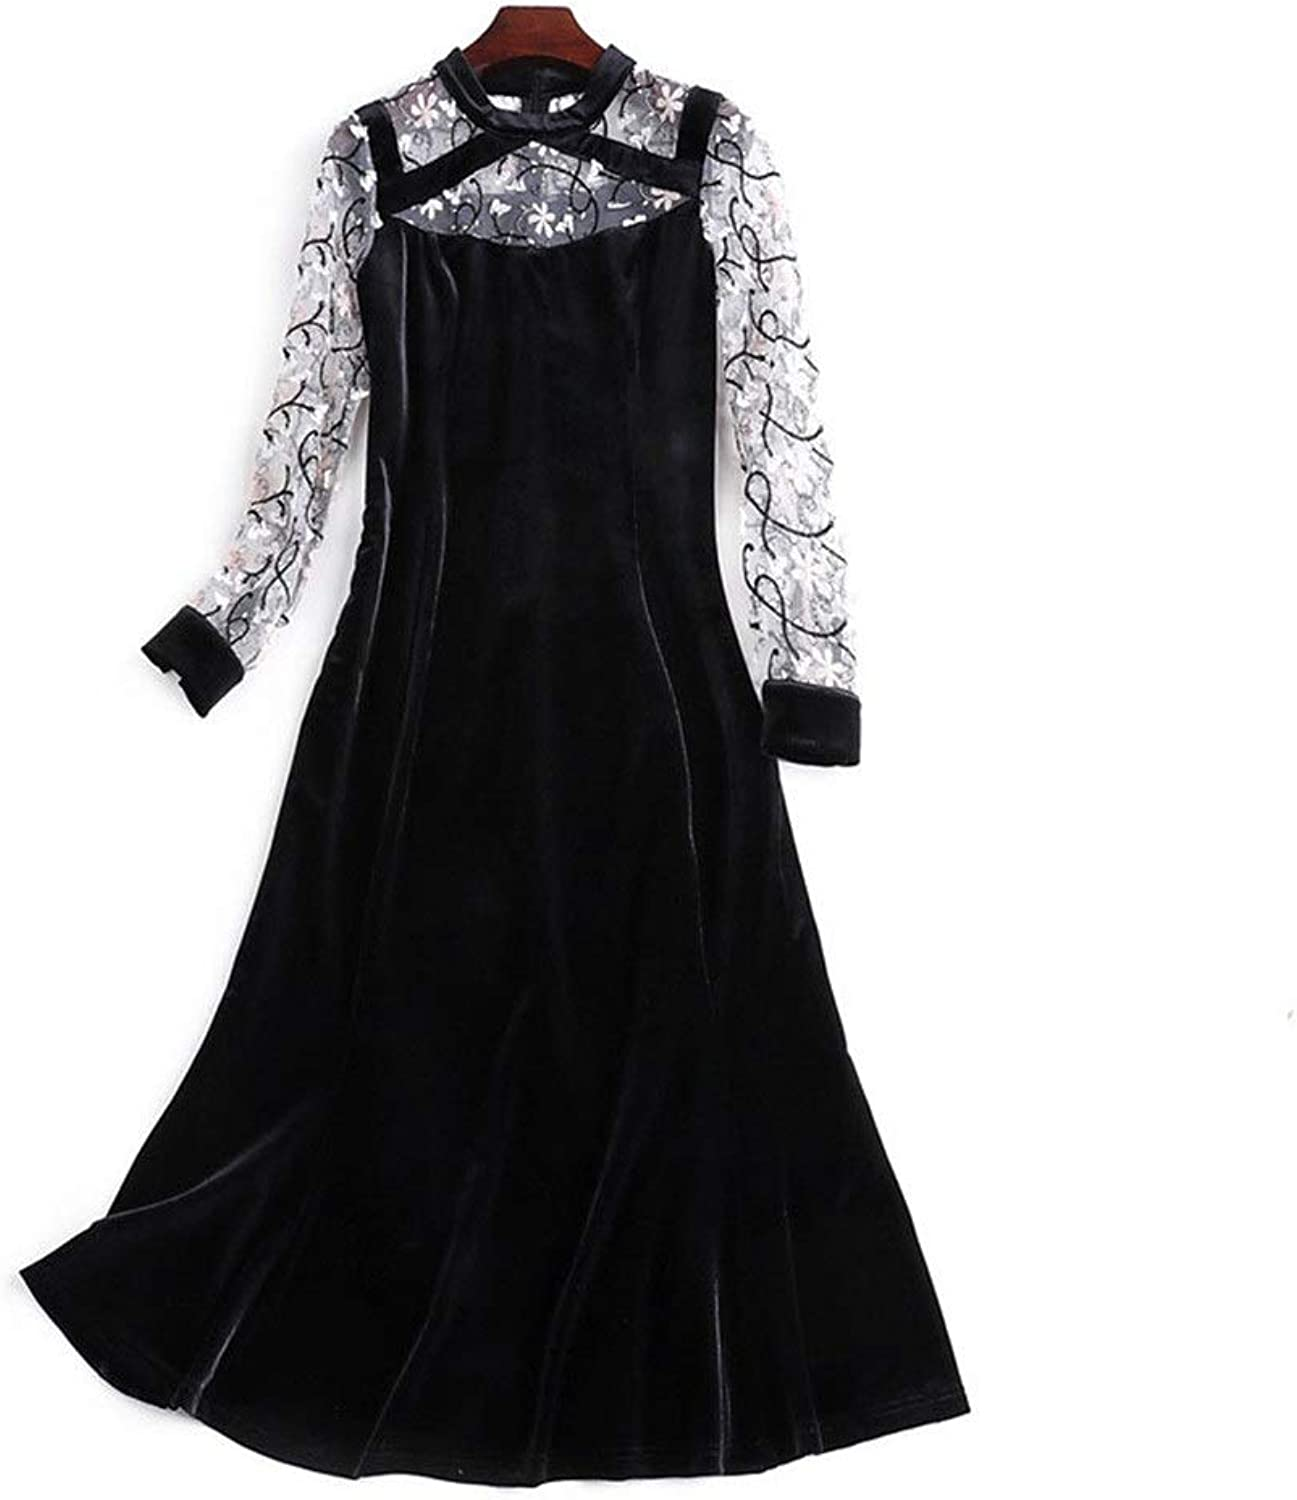 Women Ladies Elegant Midi Dress Screw Neck Long Sleeve Embroidery Floral Sheer Mesh Patchwork Casual Formal Tunic Mermaid Dress Fit & Flare Dress (color   Black, Size   M)